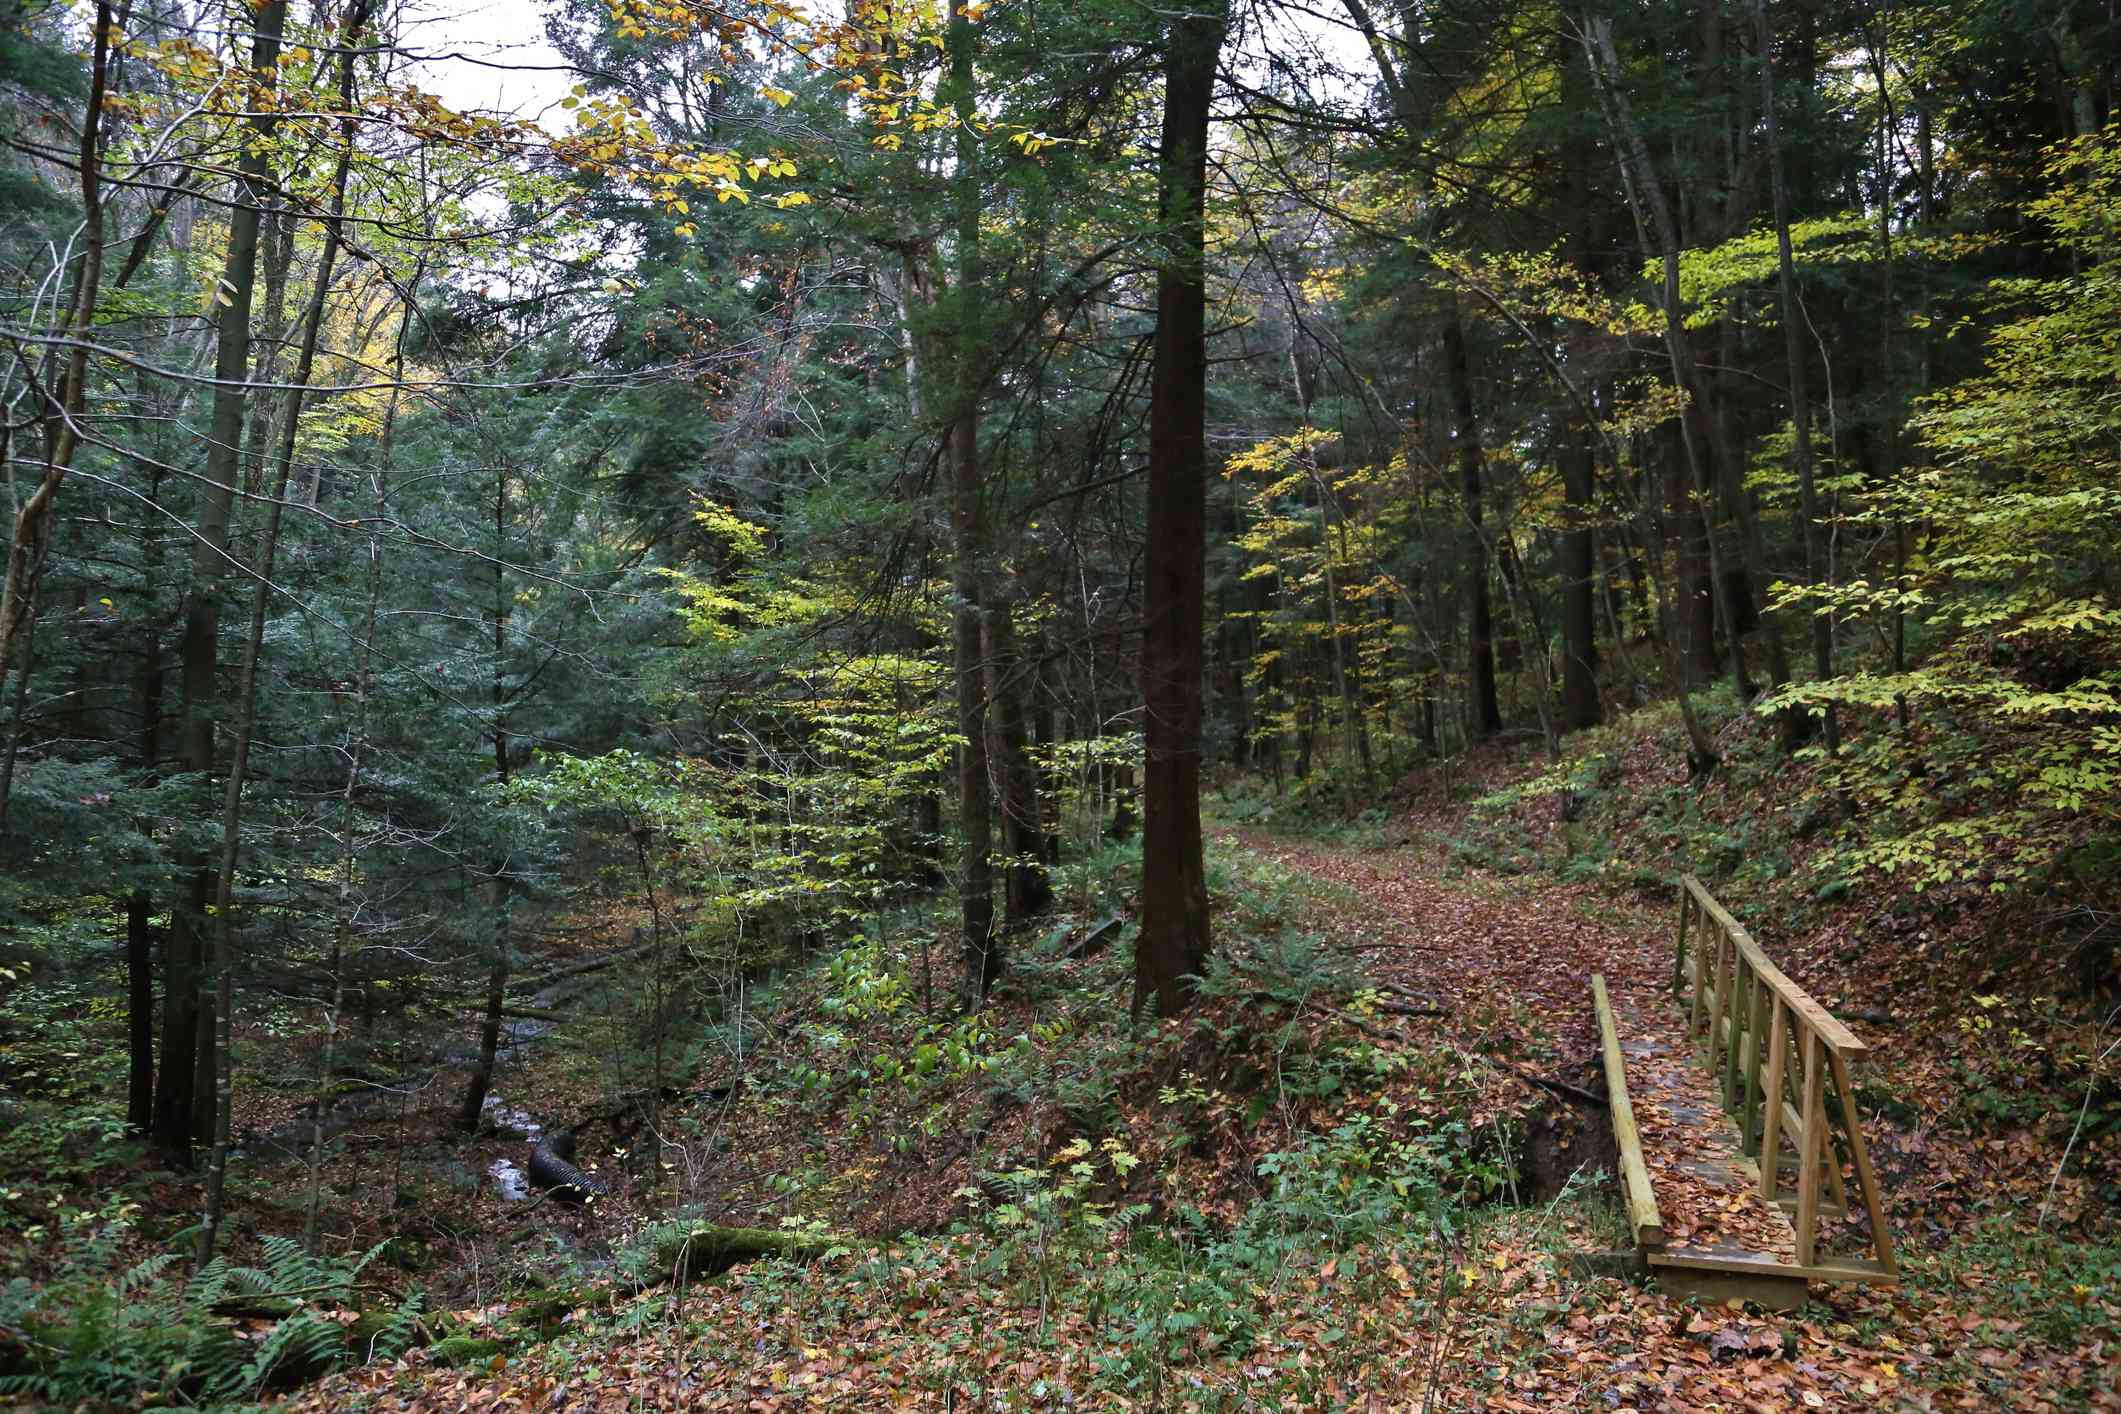 Woods and a hiking trail